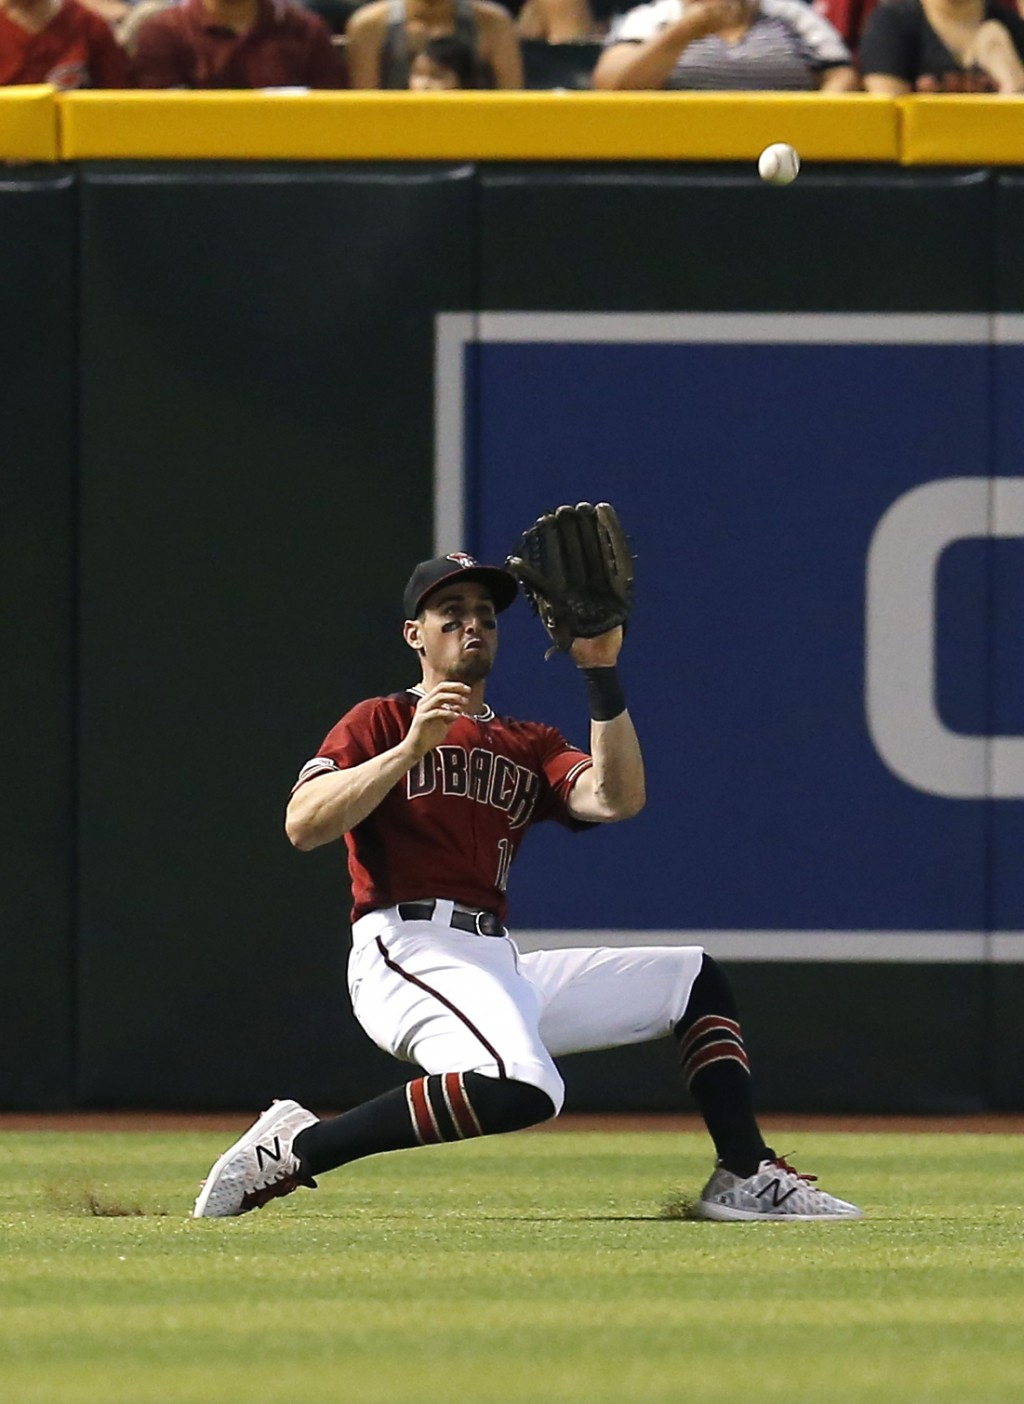 Arizona Diamondbacks left fielder Tim Locastro makes the running catch for an out on a ball hit by Washington Nationals' Patrick Corbin in the fifth i